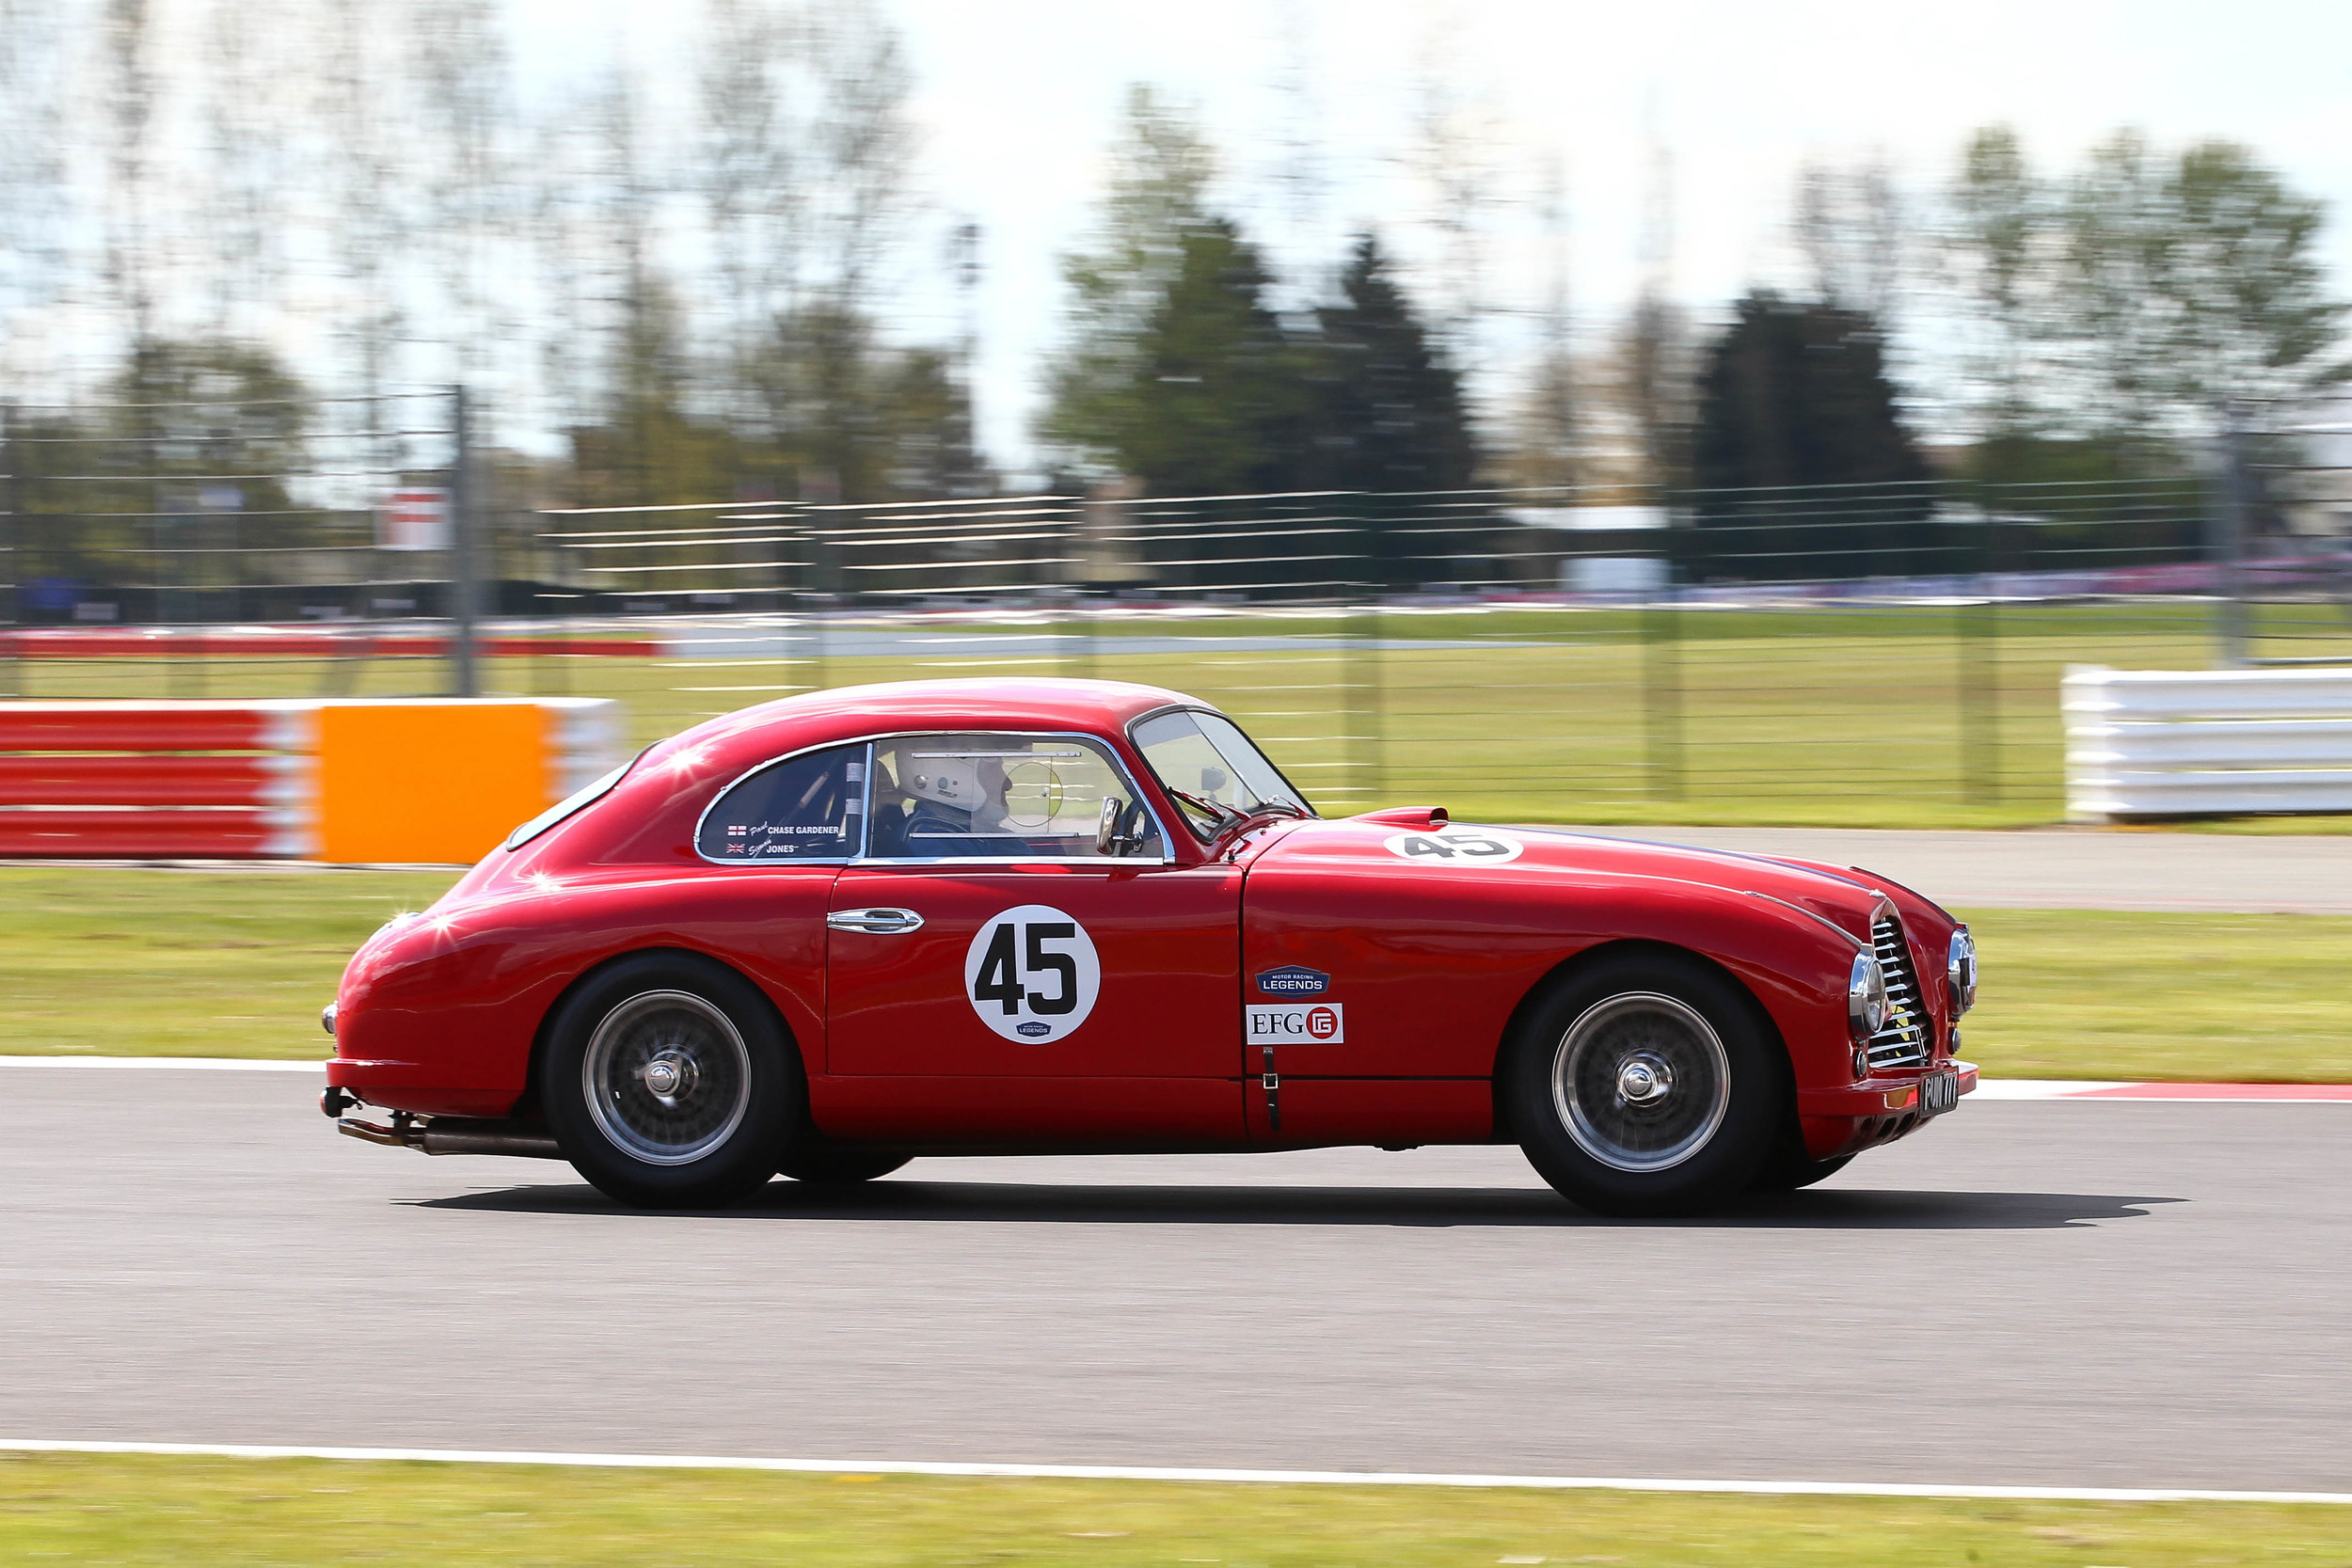 Here the lovely purposeful lines of the DB2 are shown at their best. Paul Chase-Gardner at speed                          Photo - Richard Styles